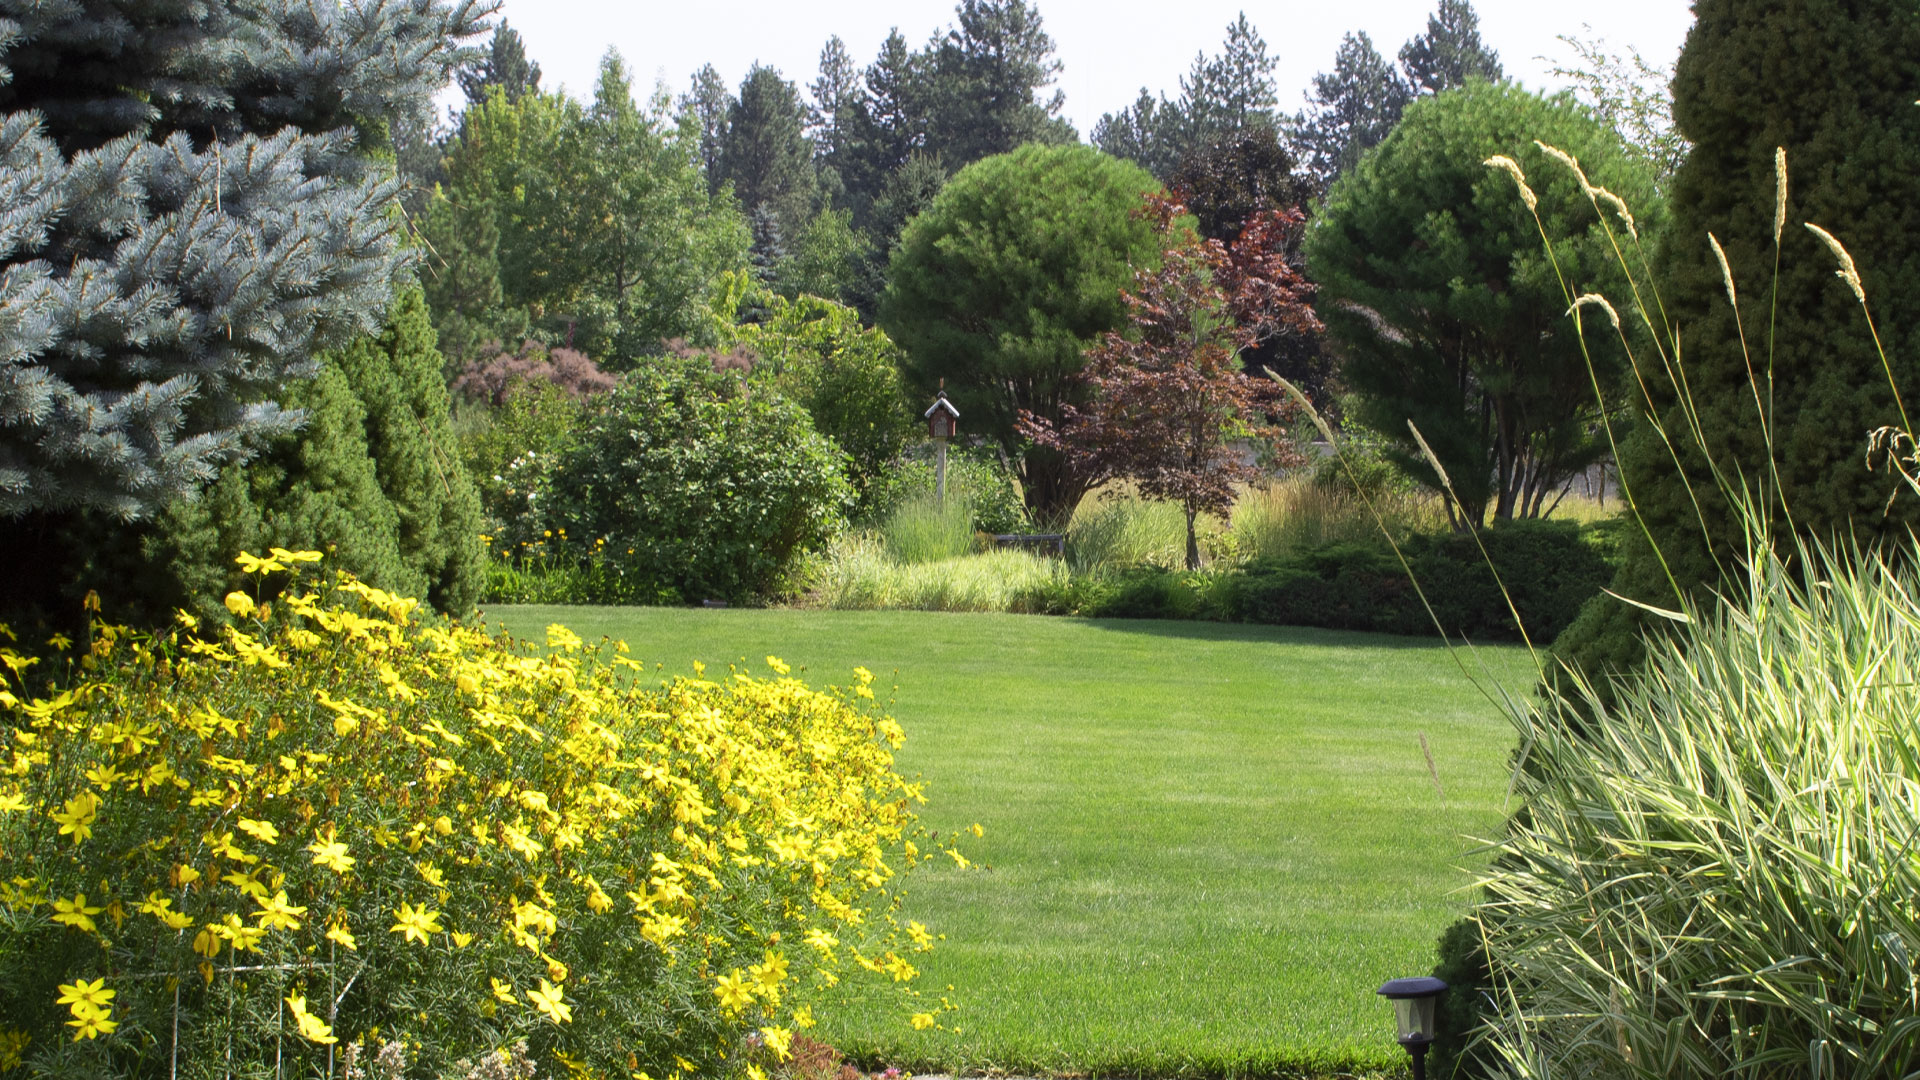 Our lawn care and disease control treatments help this lawn in Liberty Lake, WA stay healthy and green.